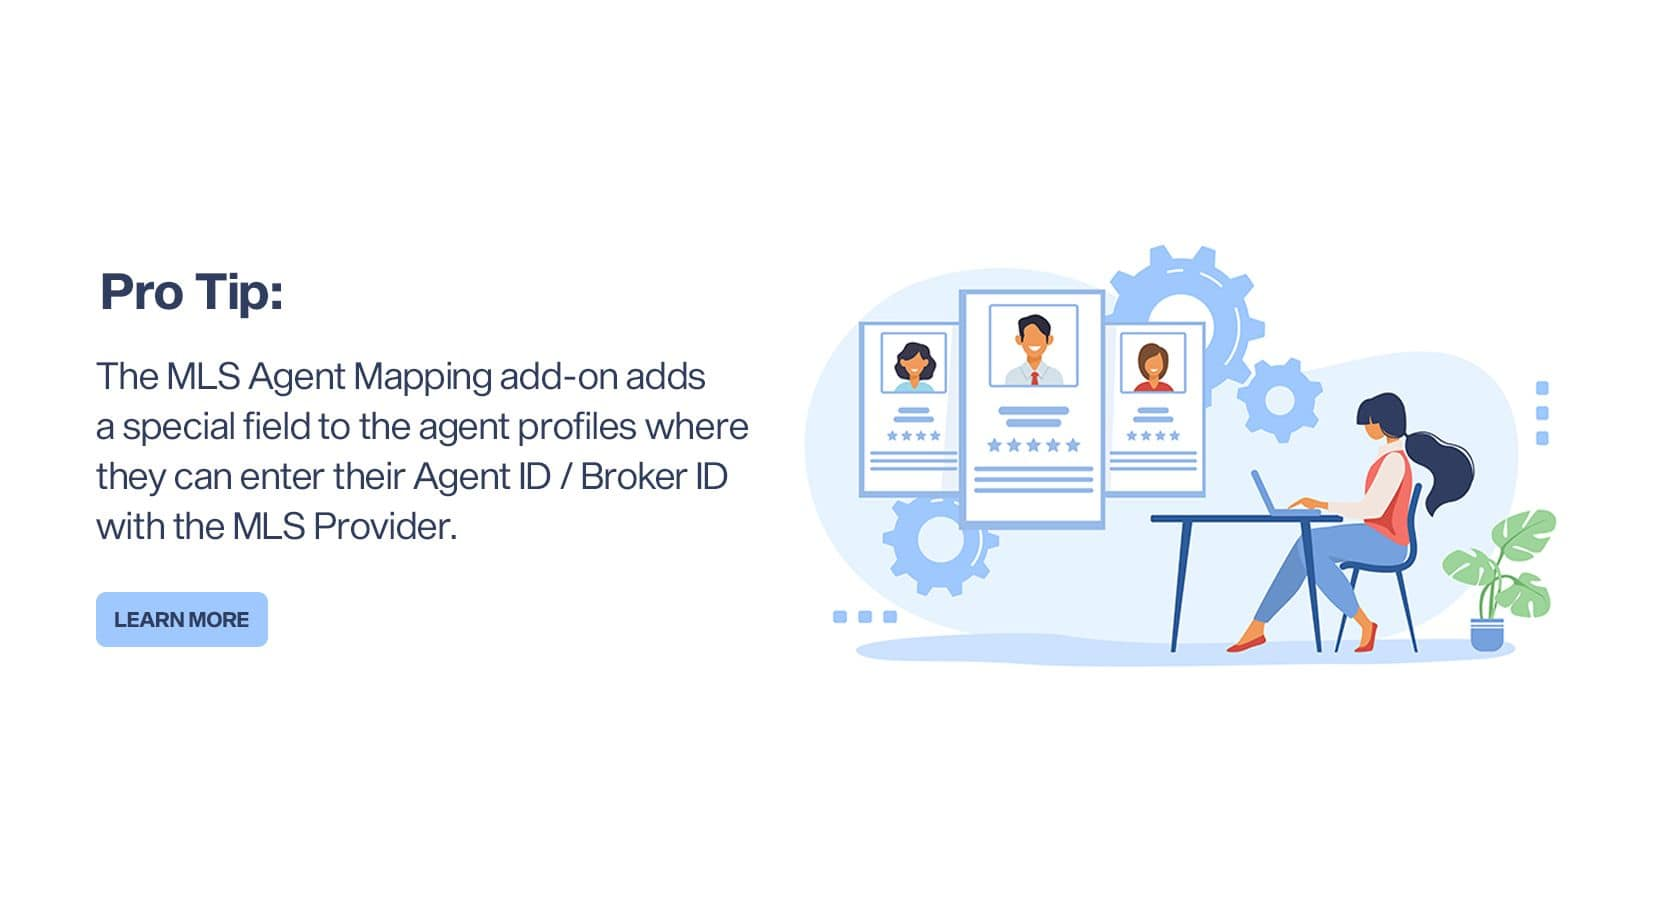 Pro-Tip: The MLS Agent Mapping Add-on adds a special field to the agent profiles where they can enter their Agent ID / Broker ID with the MLS provider.